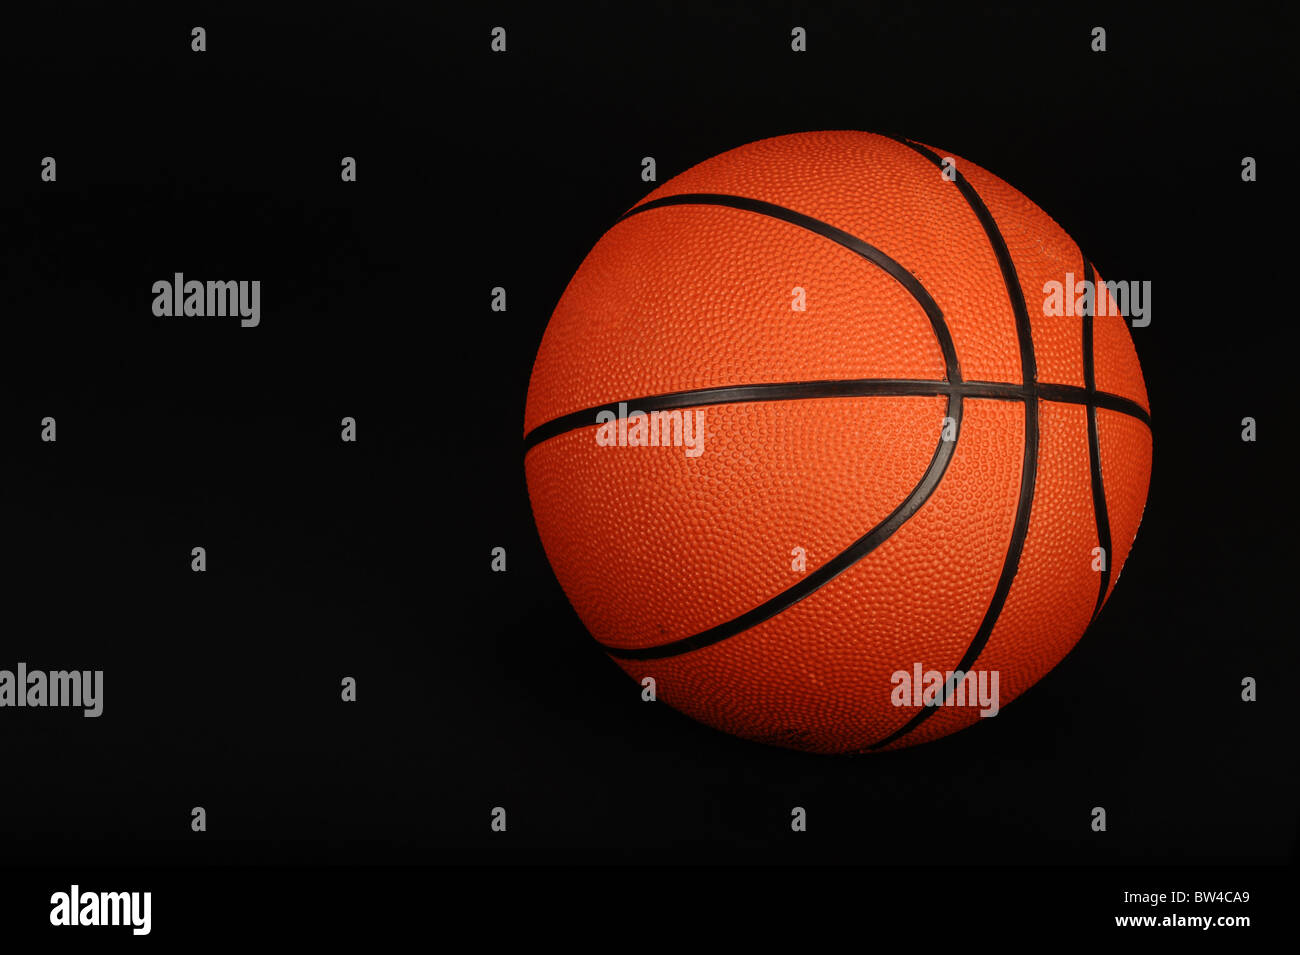 Basketball on black background ready for your type. - Stock Image